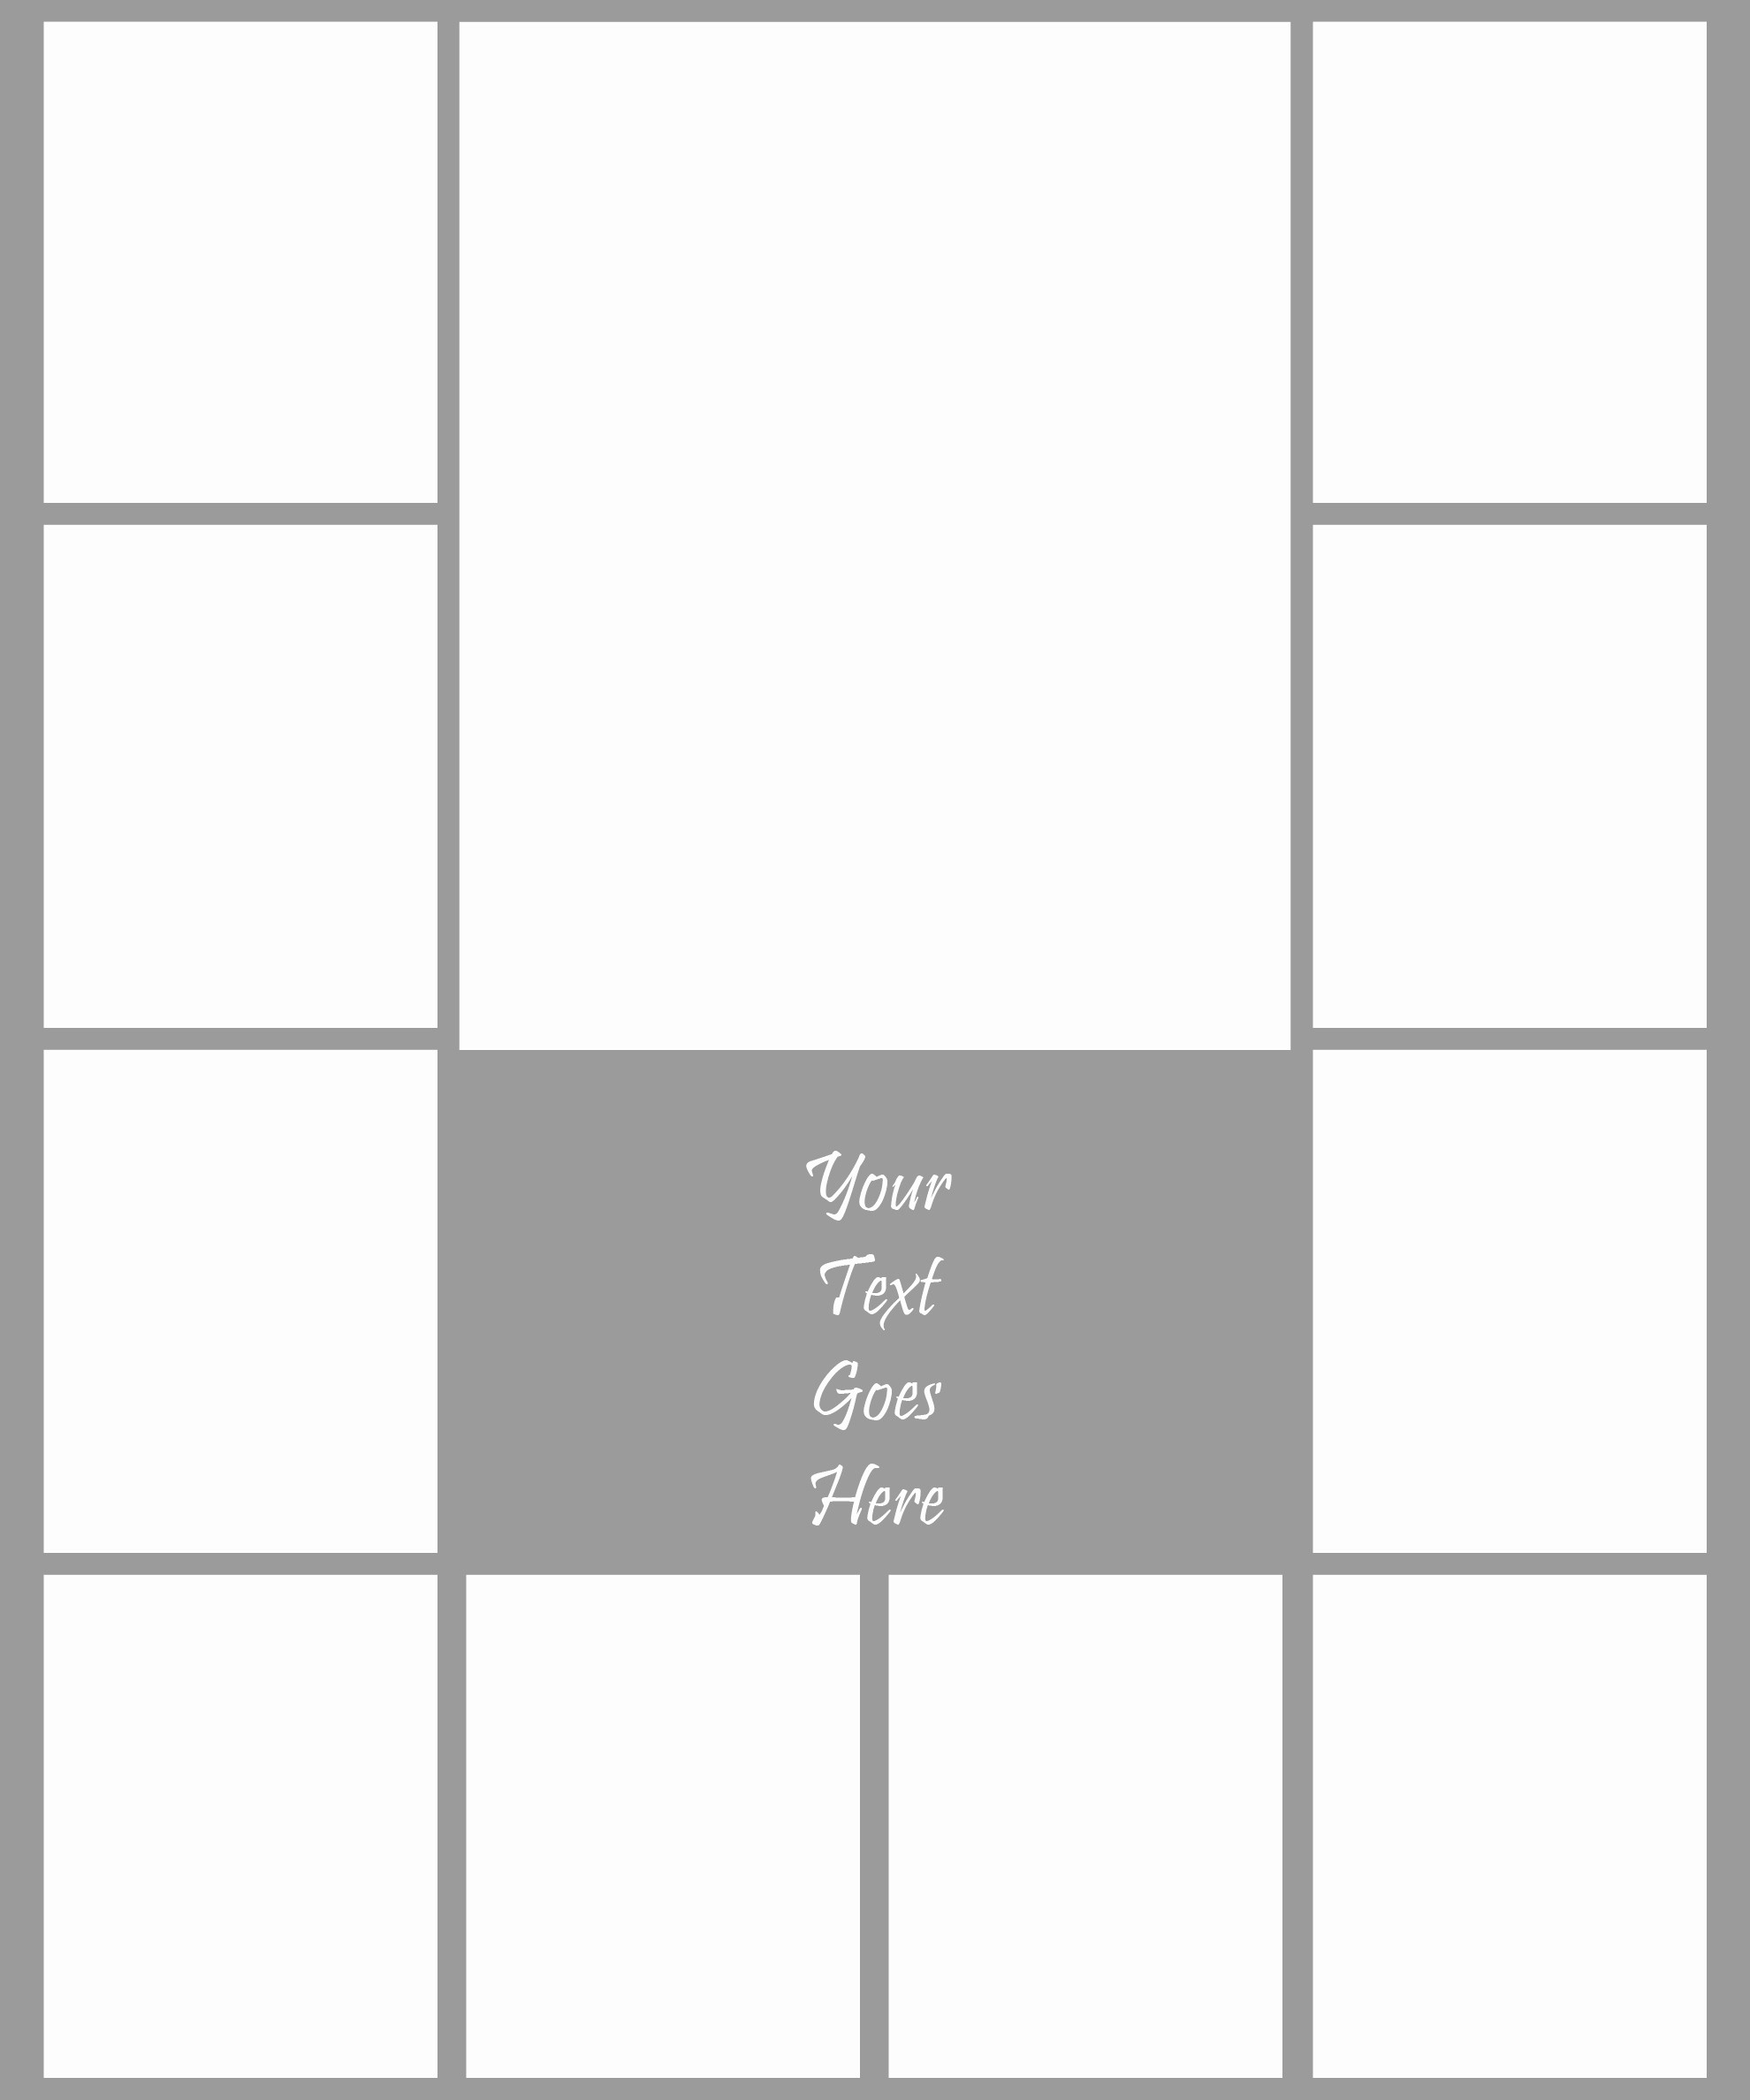 Microsoft Word Photo Collage Template New Collage Template 2